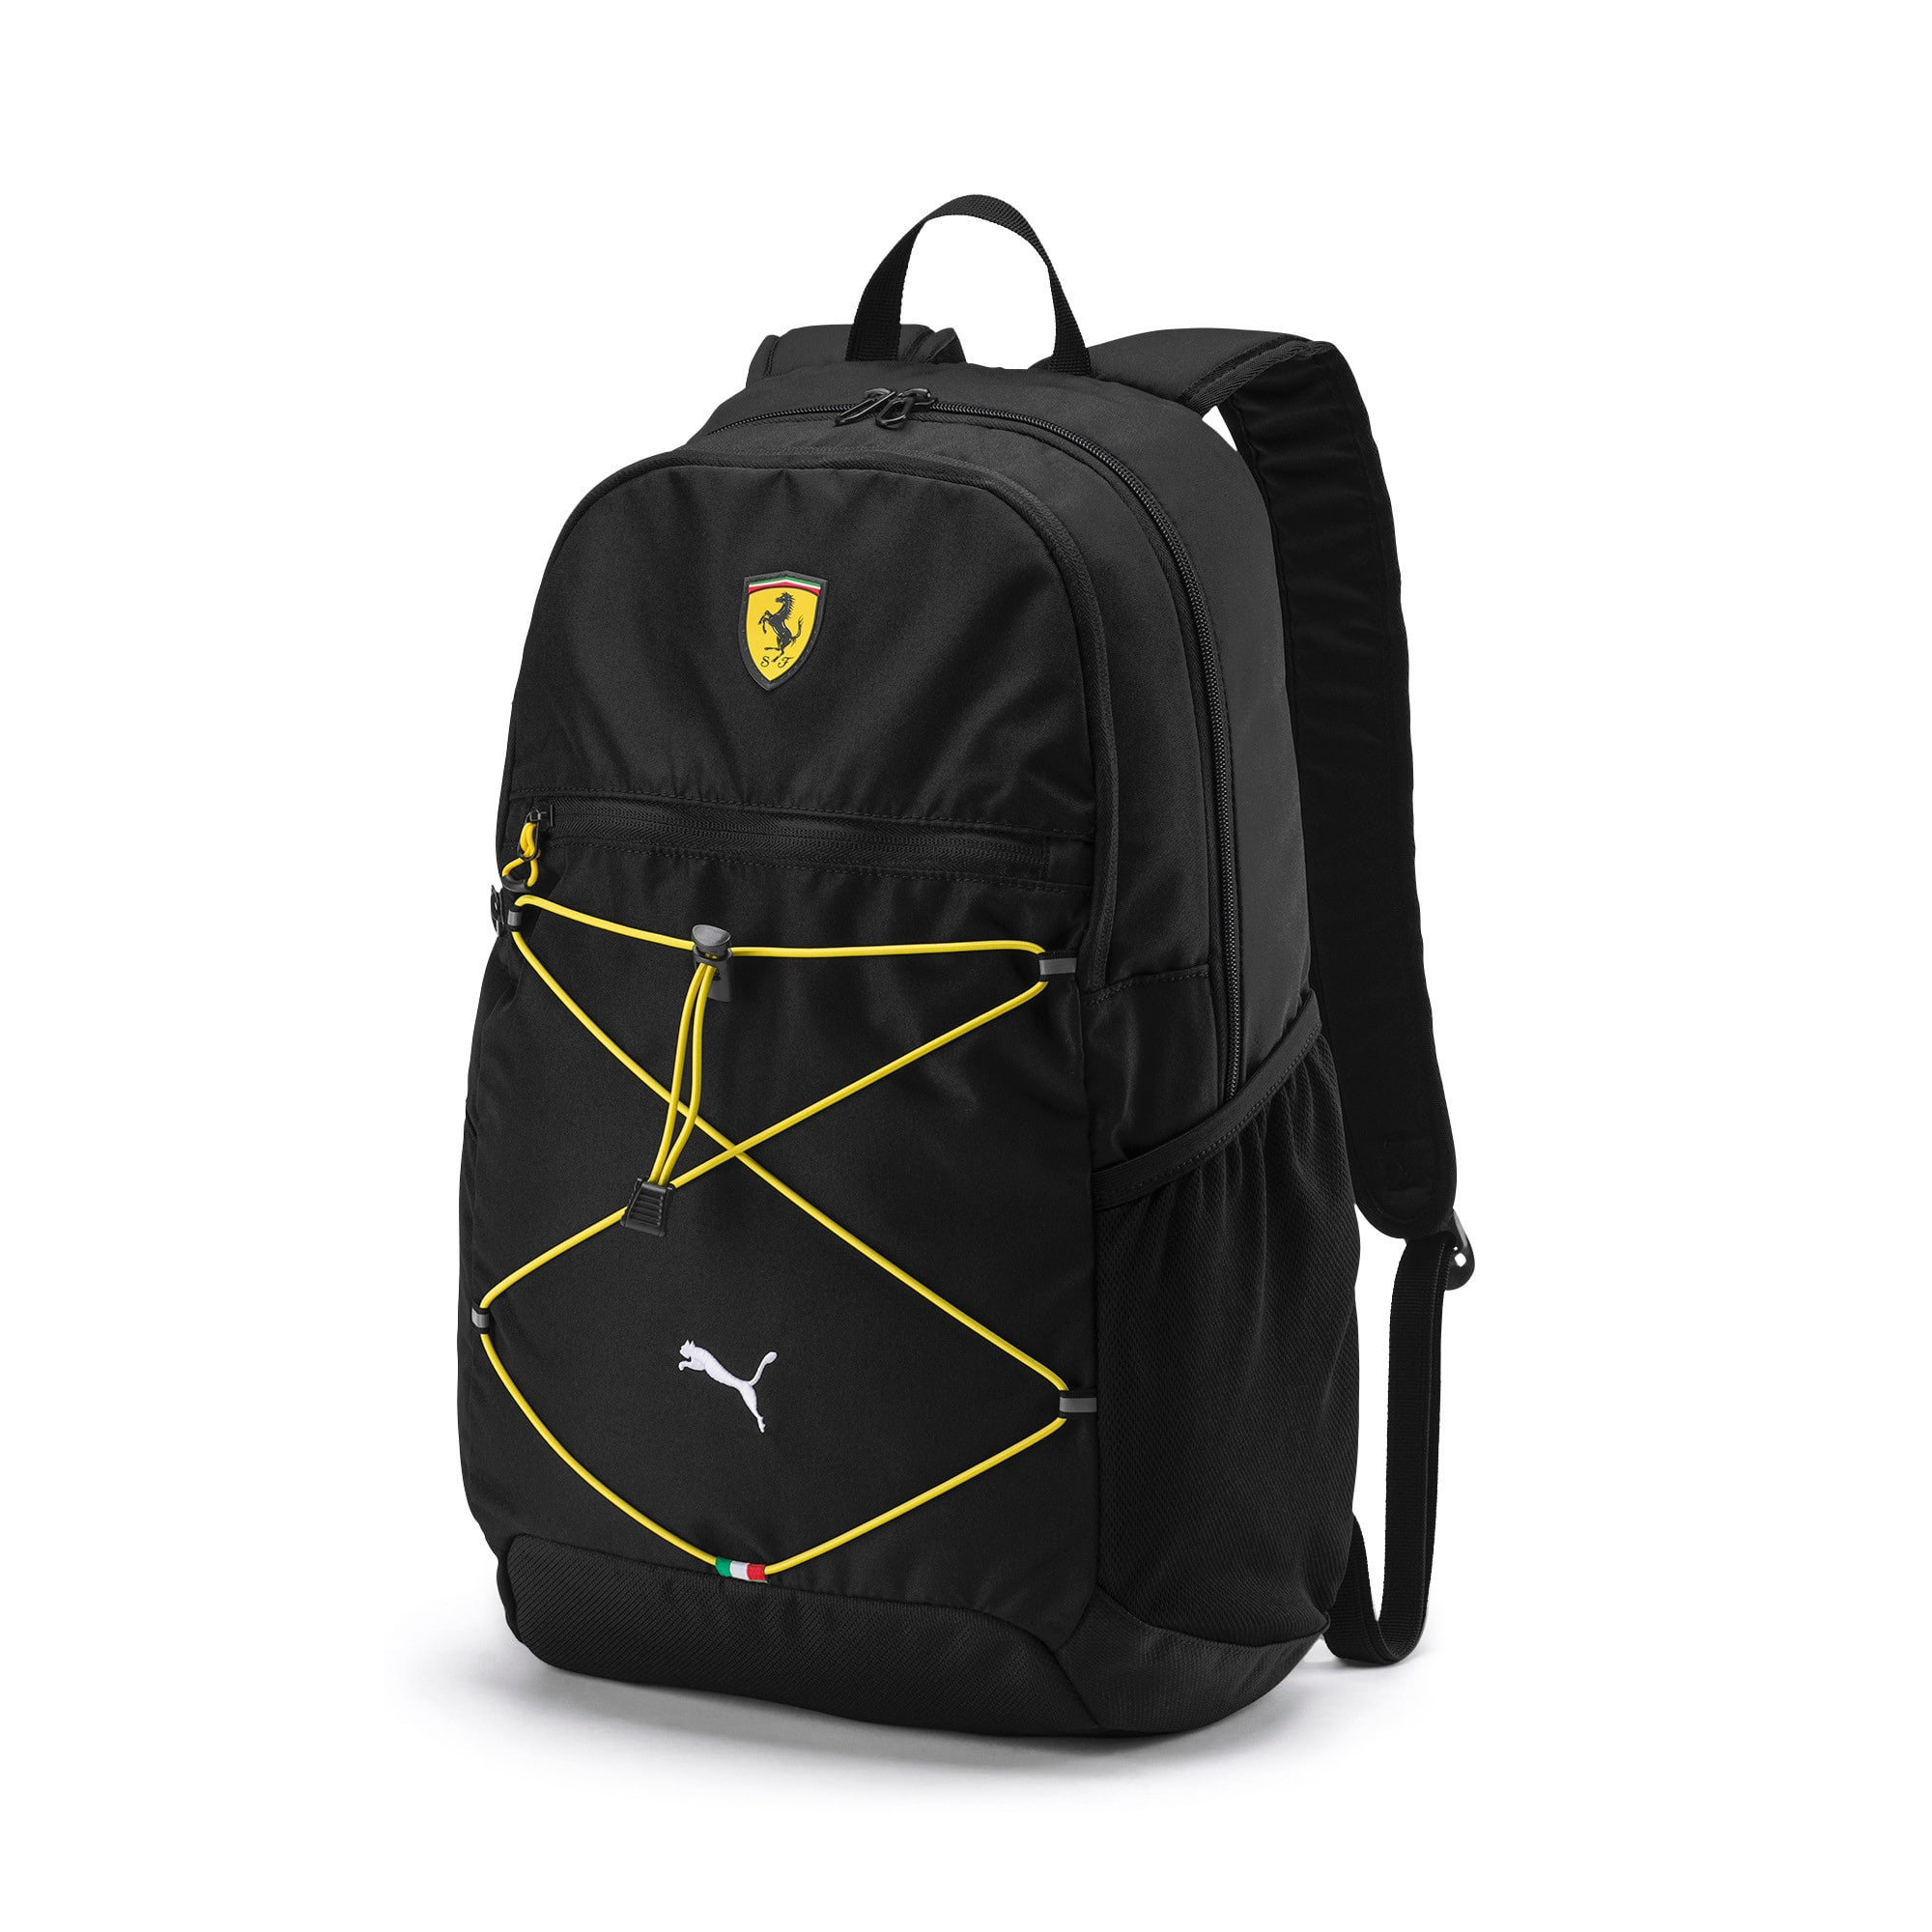 Thumbnail 1 of Ferrari Fanwear Rucksack, Puma Black, medium